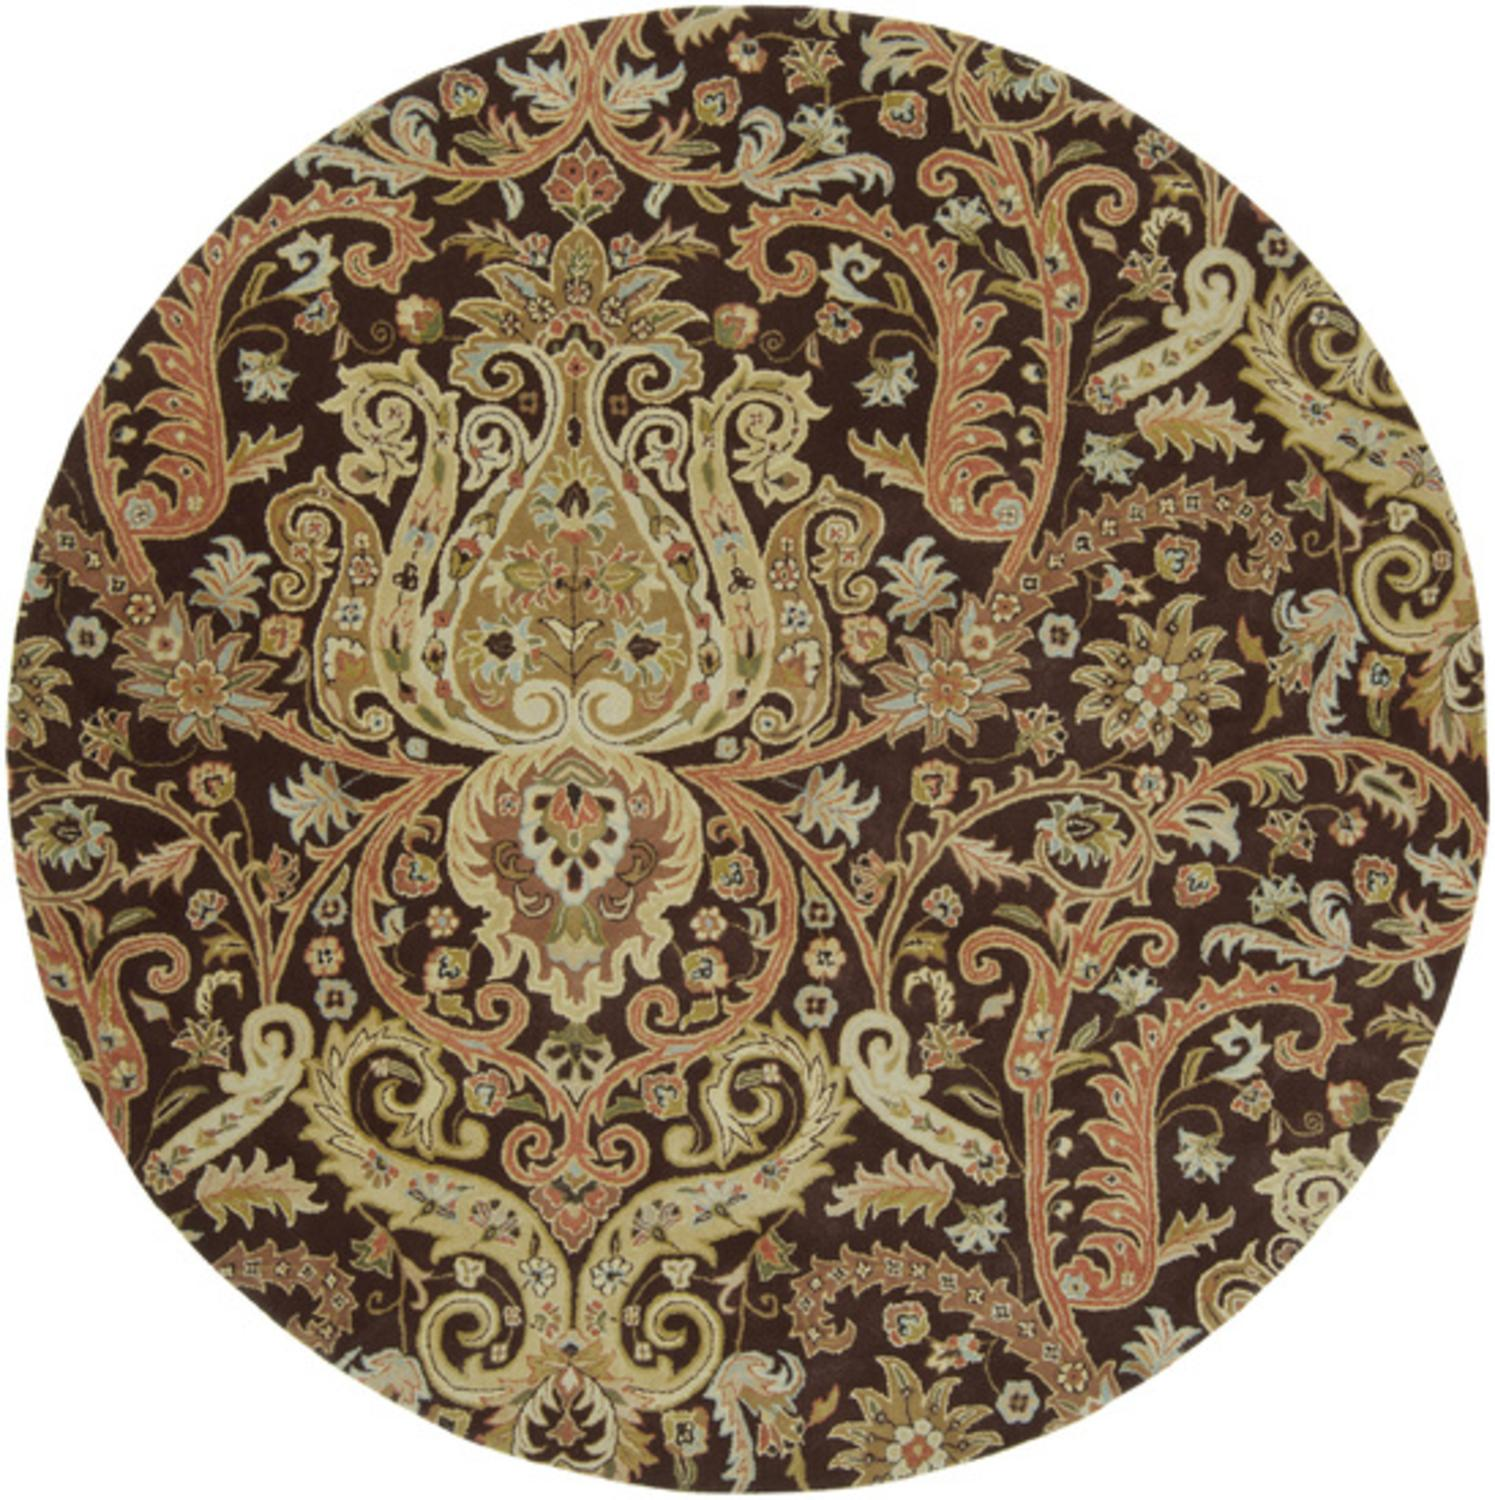 8' Vigne Bohème Caramel and Brown Round Wool Area Throw Rug